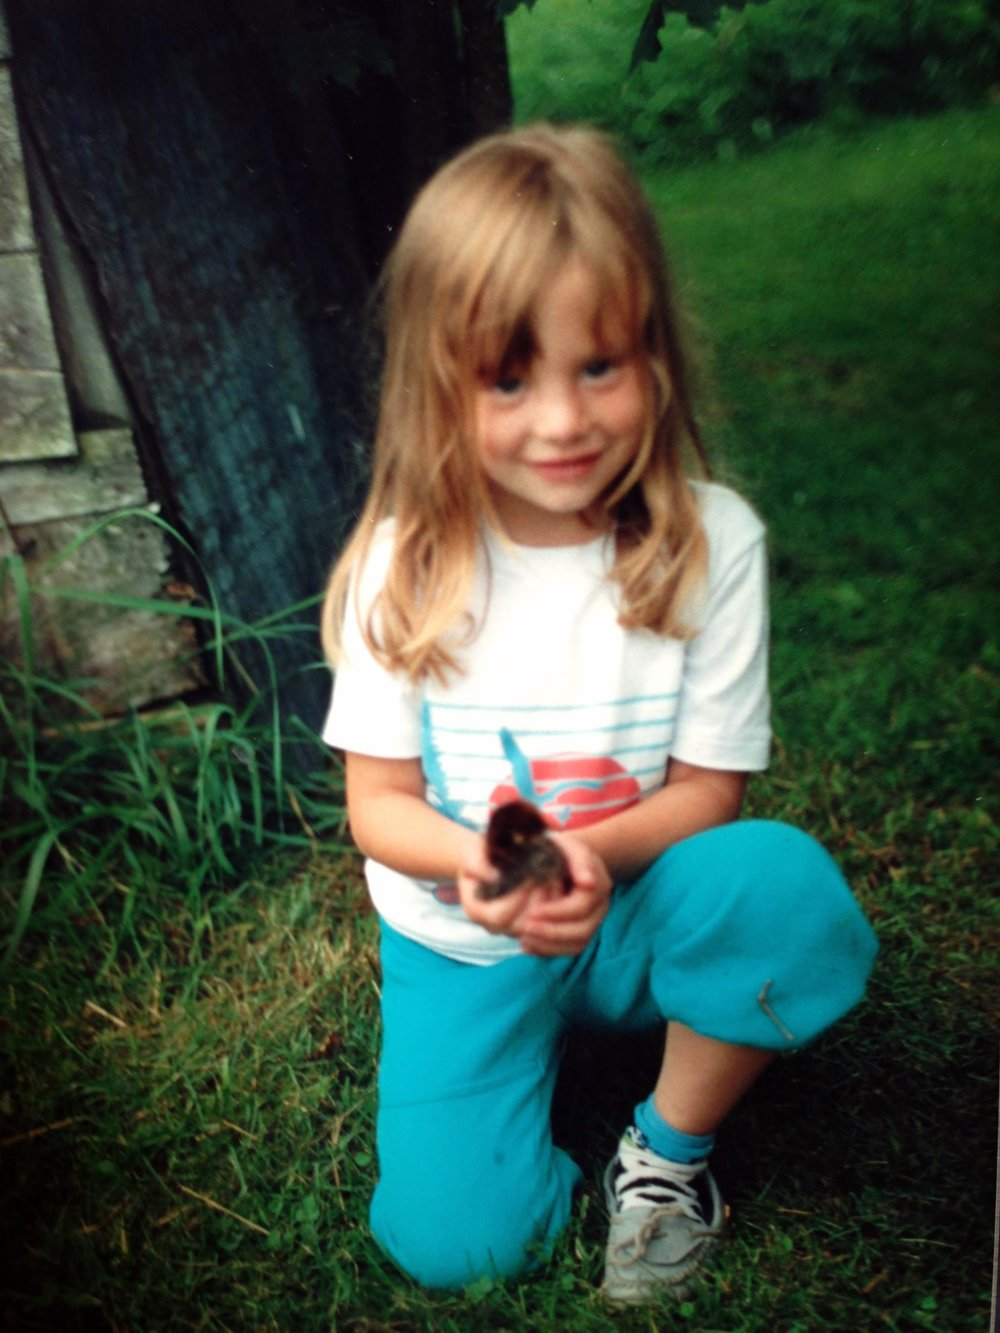 Me as a kiddo holding a chick